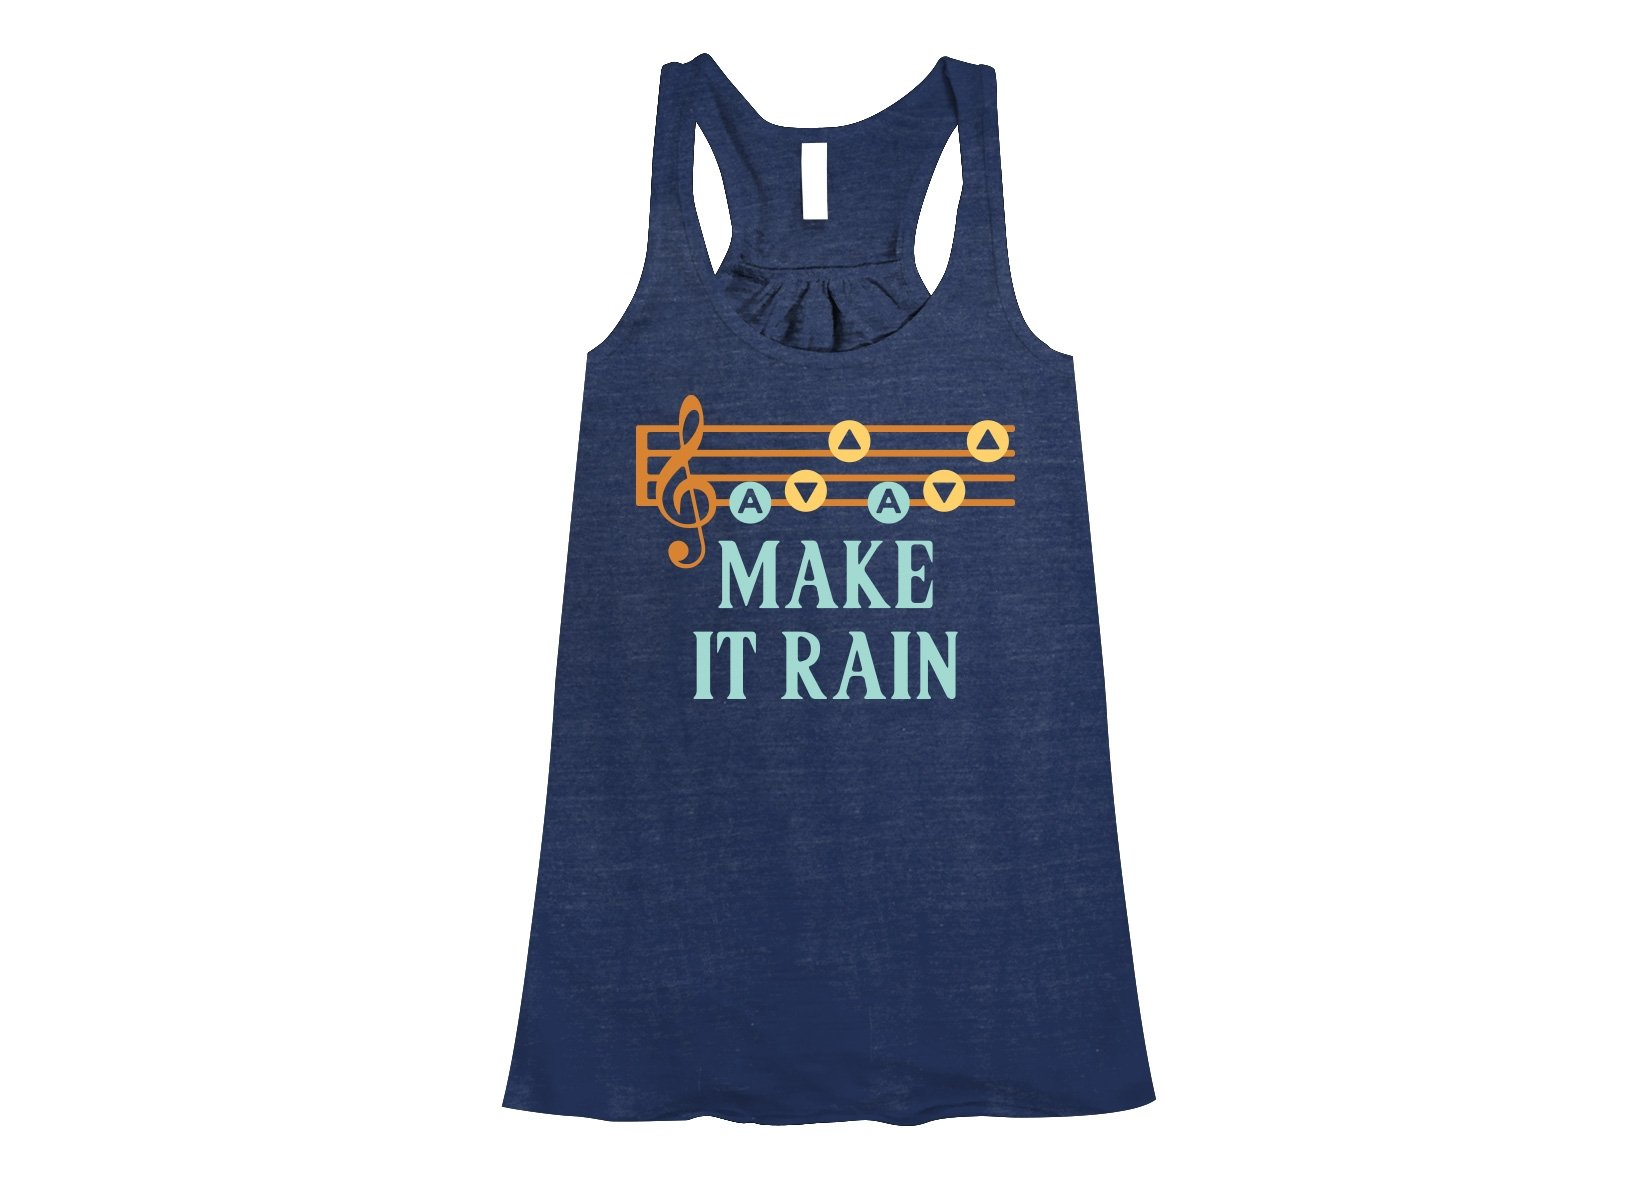 Make It Rain on Womens Tanks T-Shirt